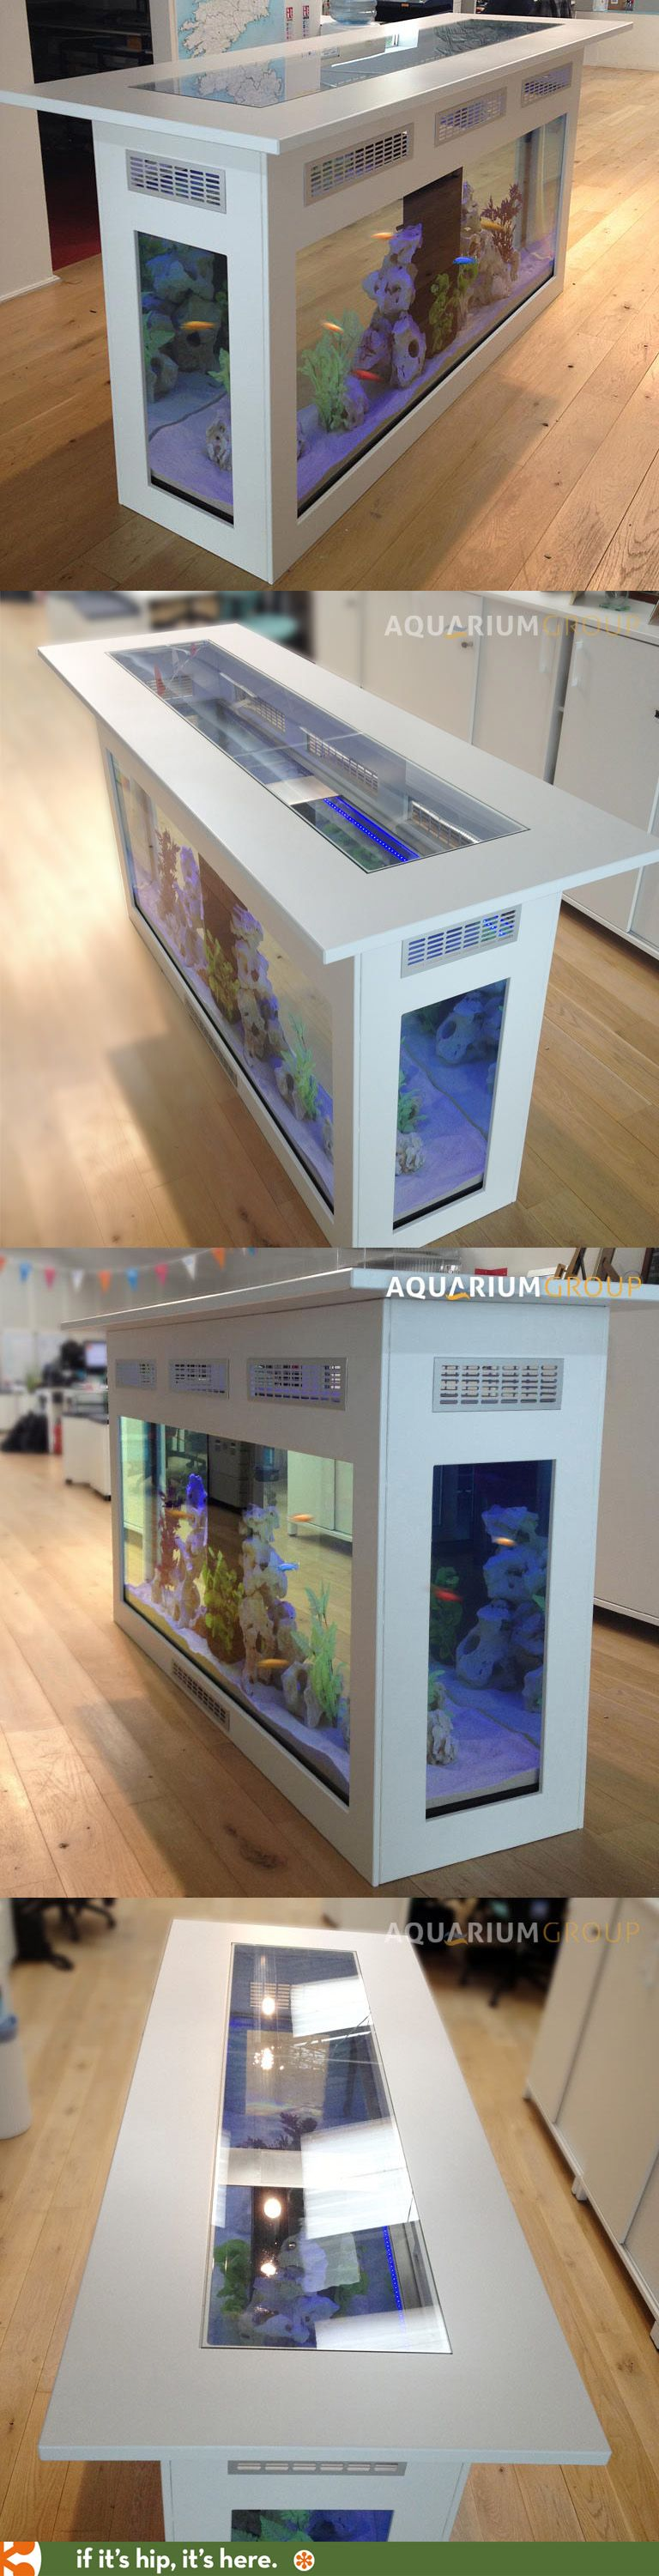 Aquarium Interior Design Ideas https://www.youtube.com